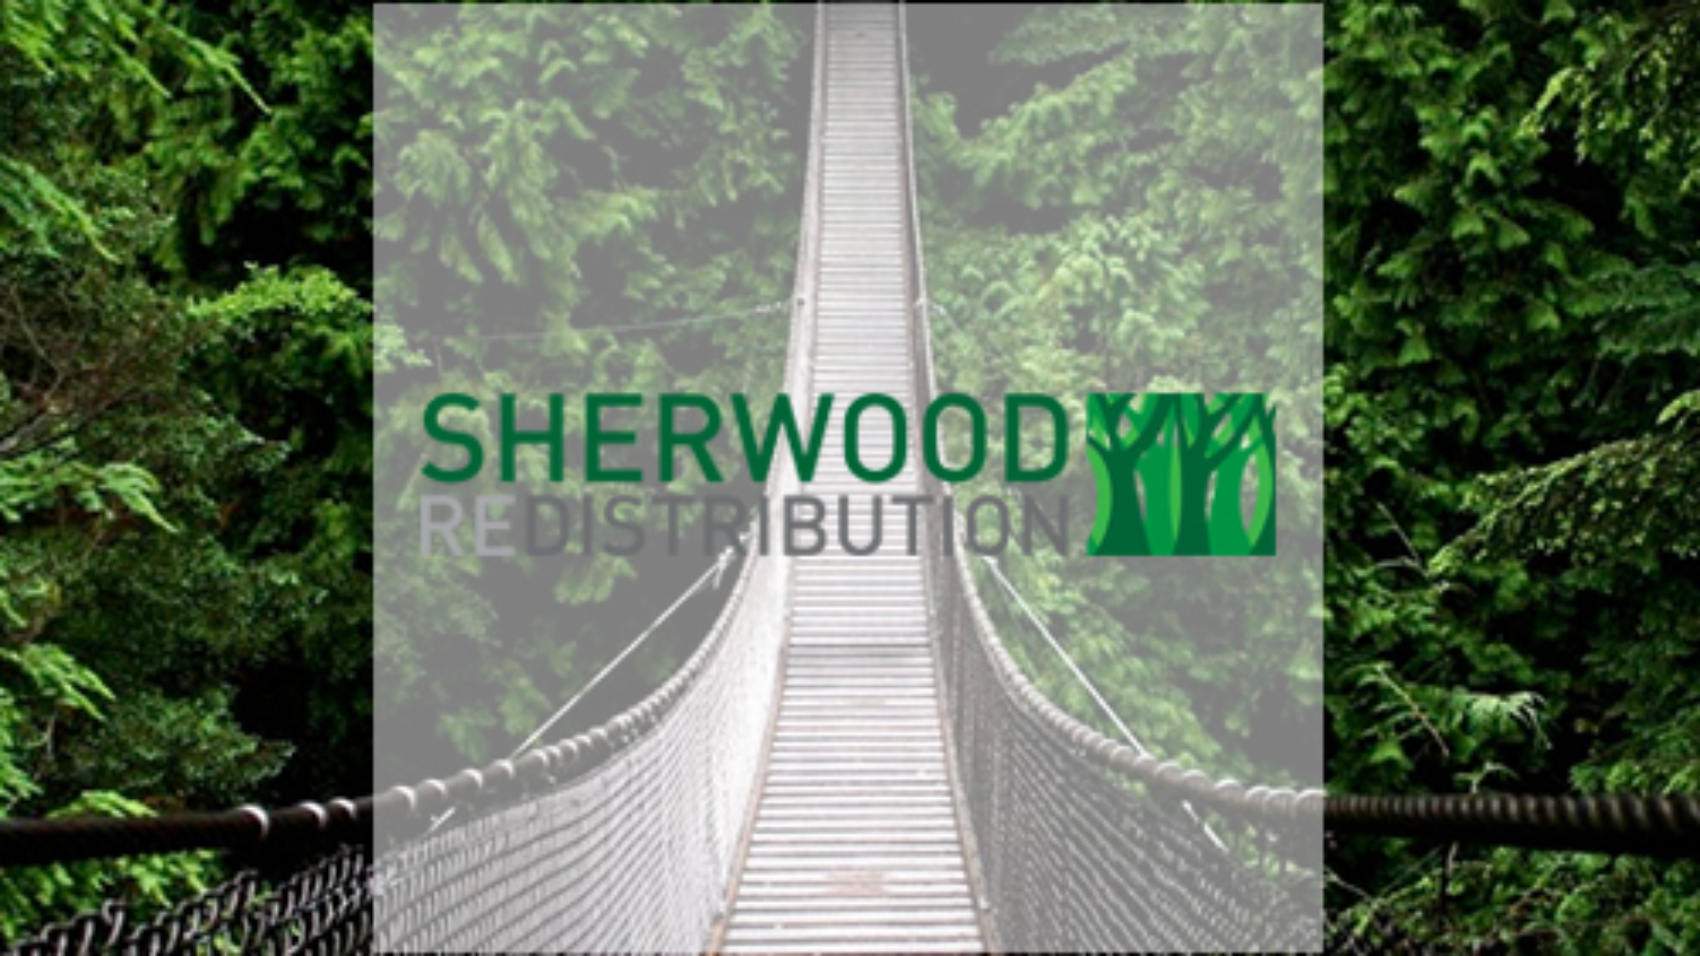 Sherwood ReDistribution